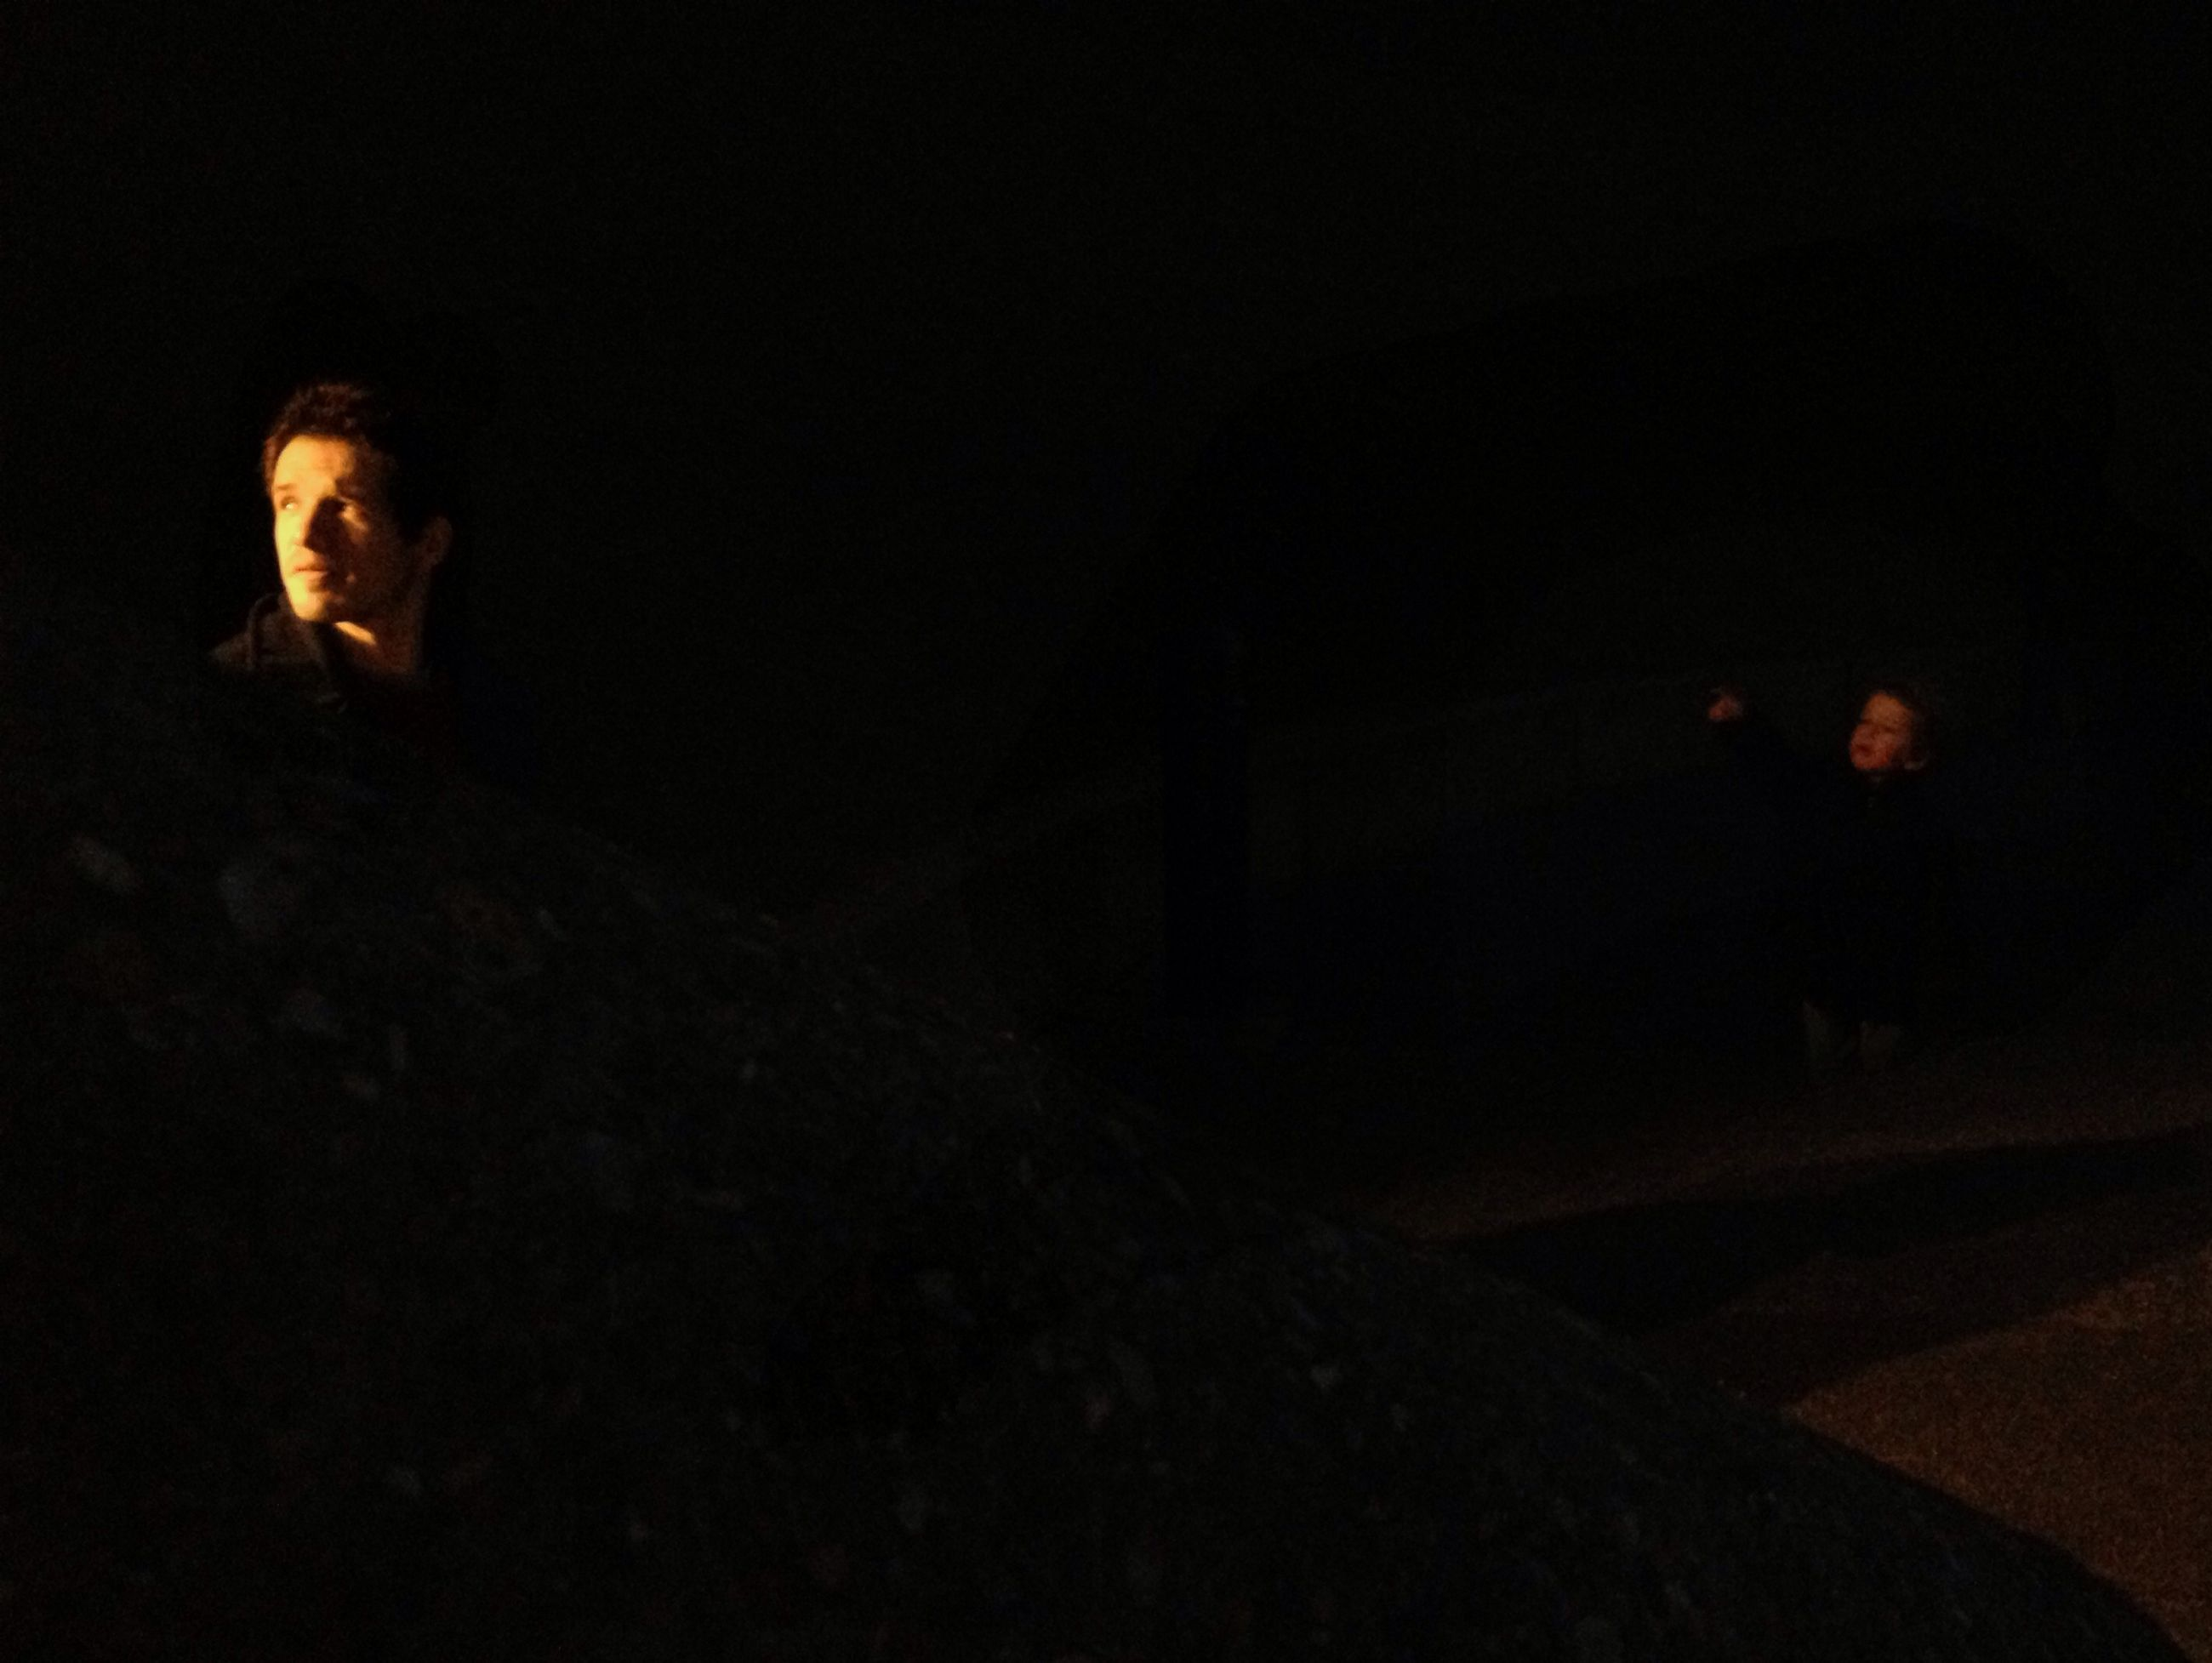 lifestyles, night, leisure activity, young adult, copy space, person, indoors, full length, portrait, casual clothing, young men, standing, looking at camera, dark, three quarter length, sitting, side view